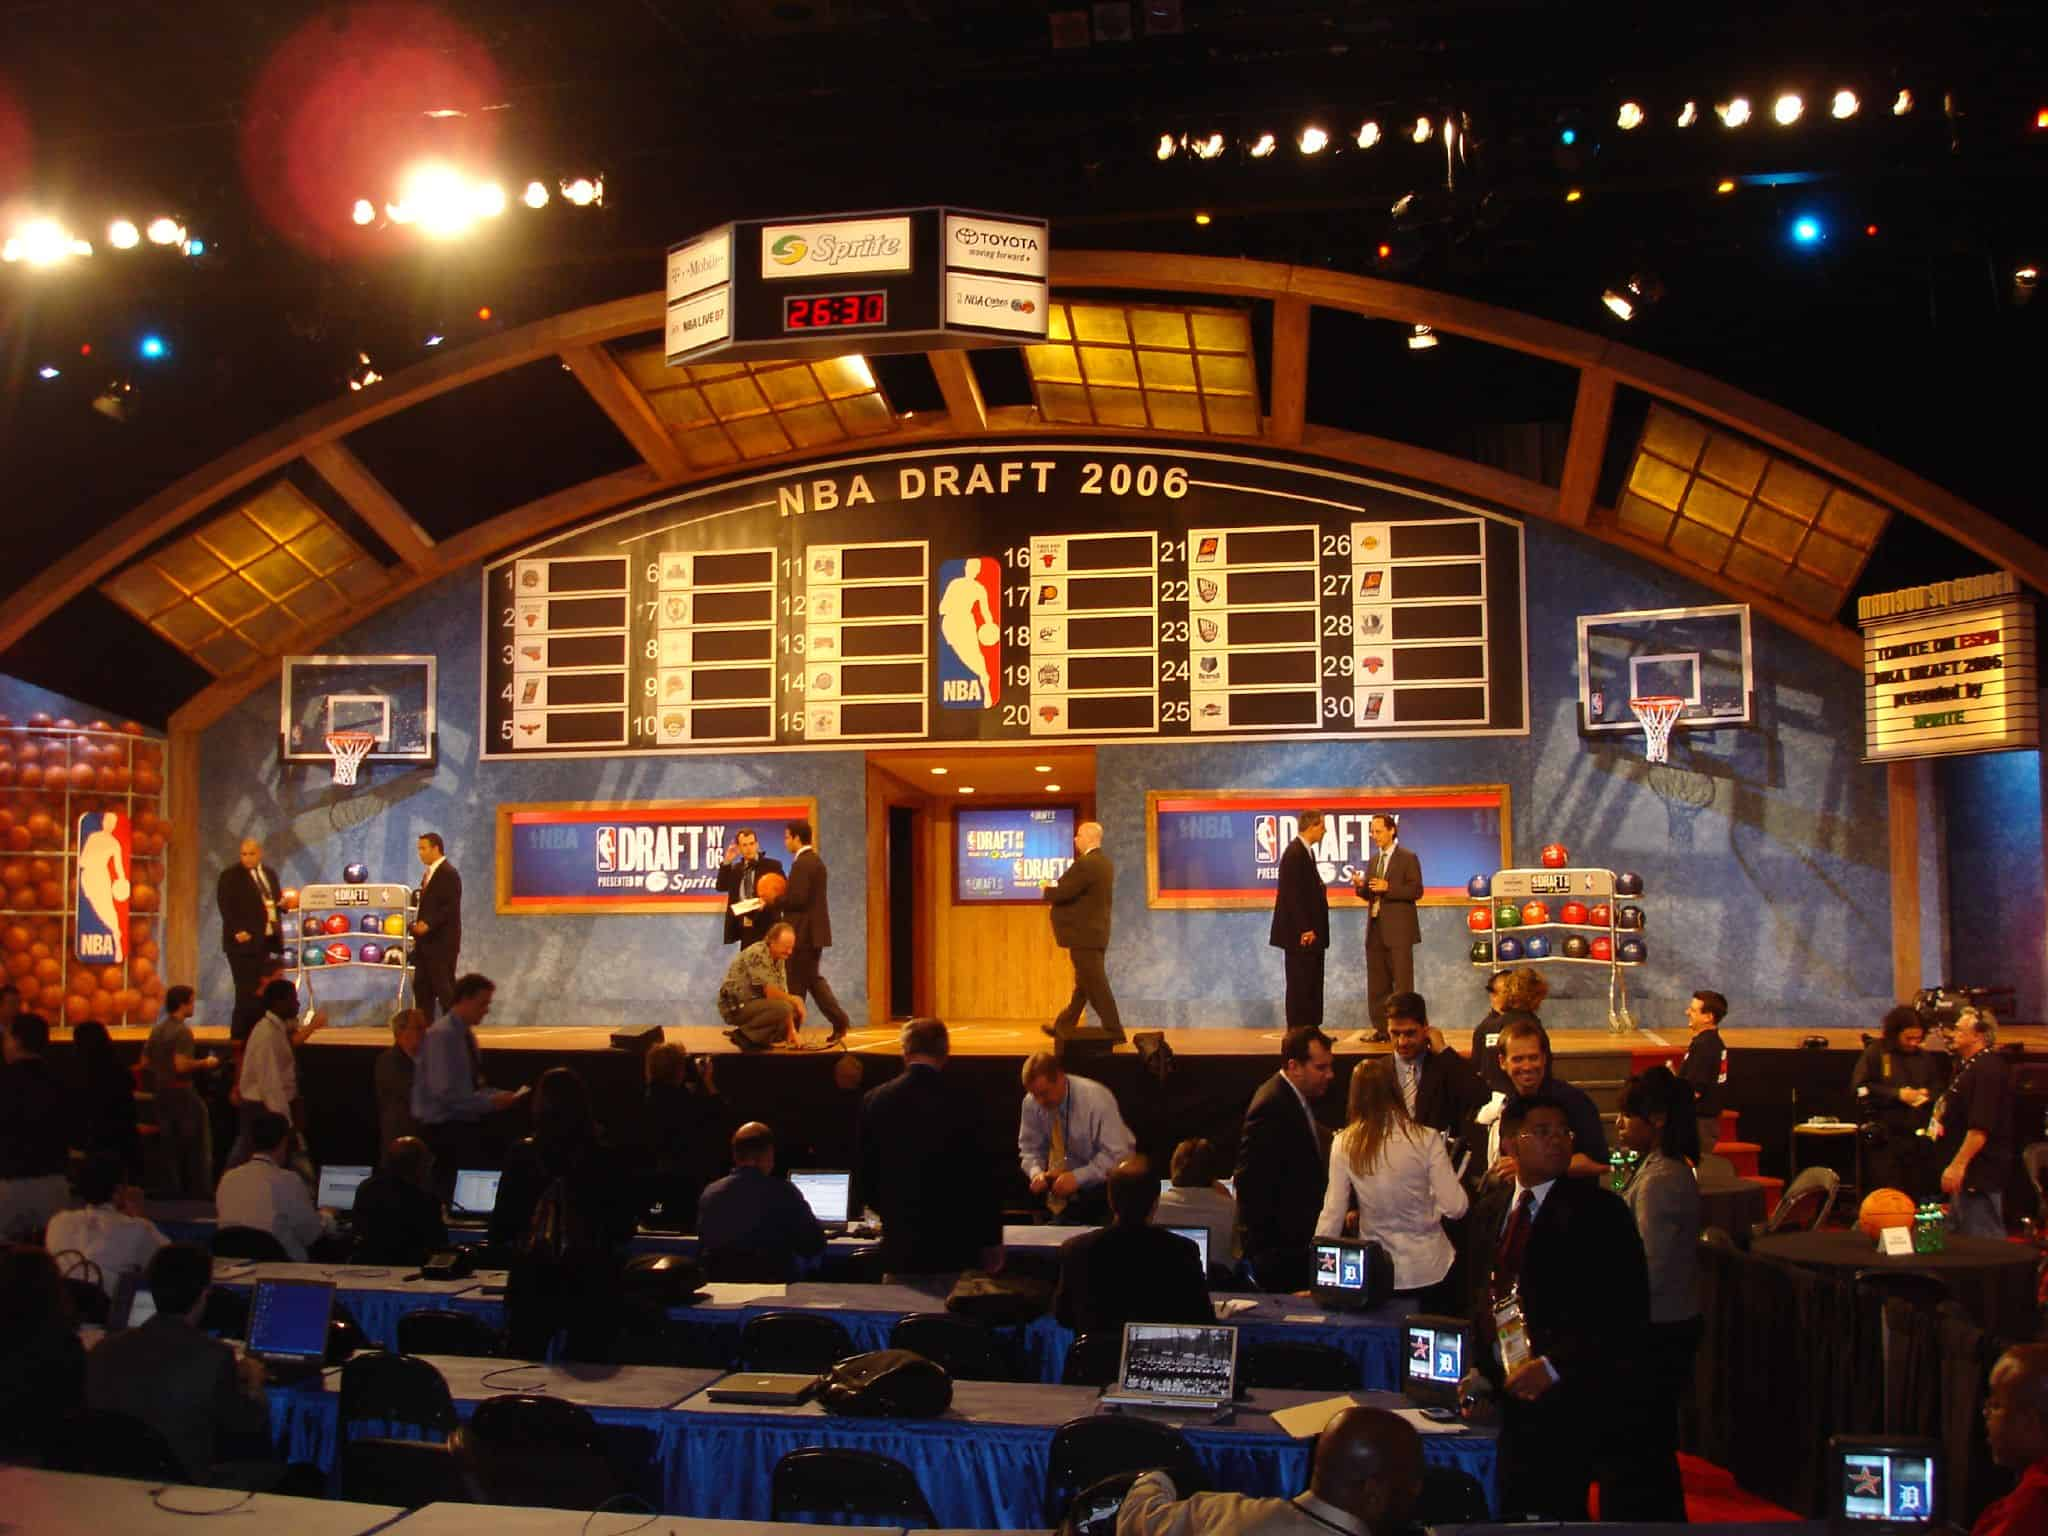 nba draft image